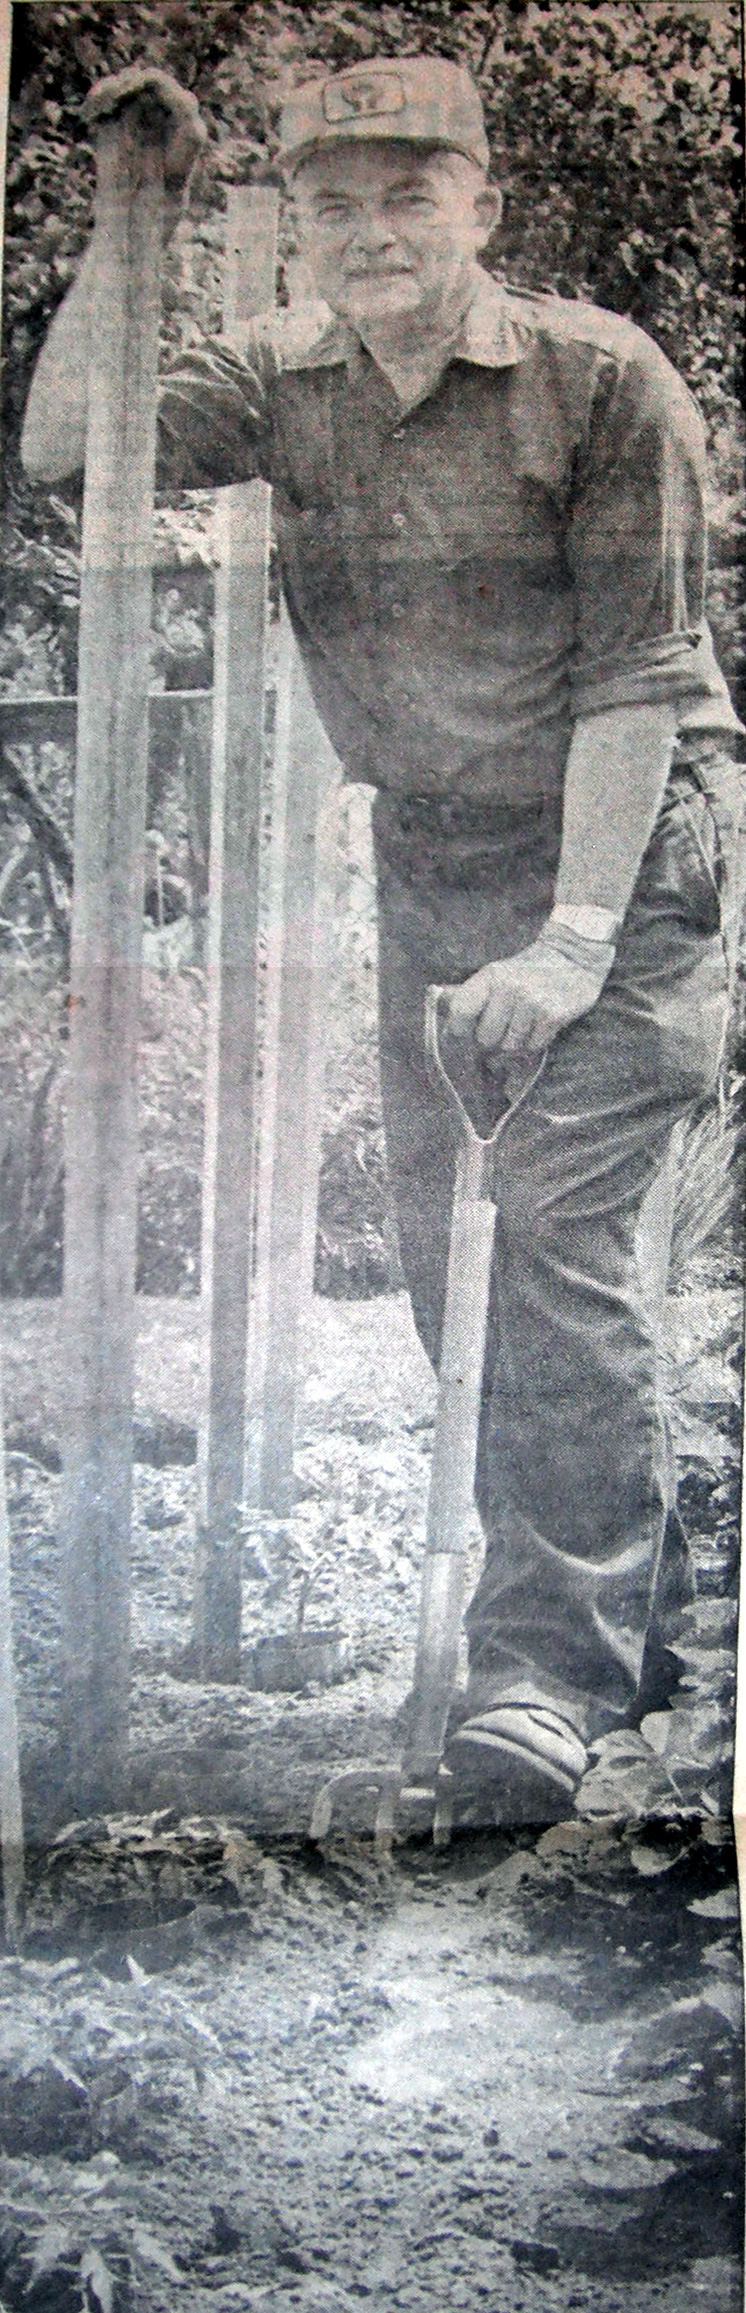 Platoon Chief Fred Holmes standing in his garden.